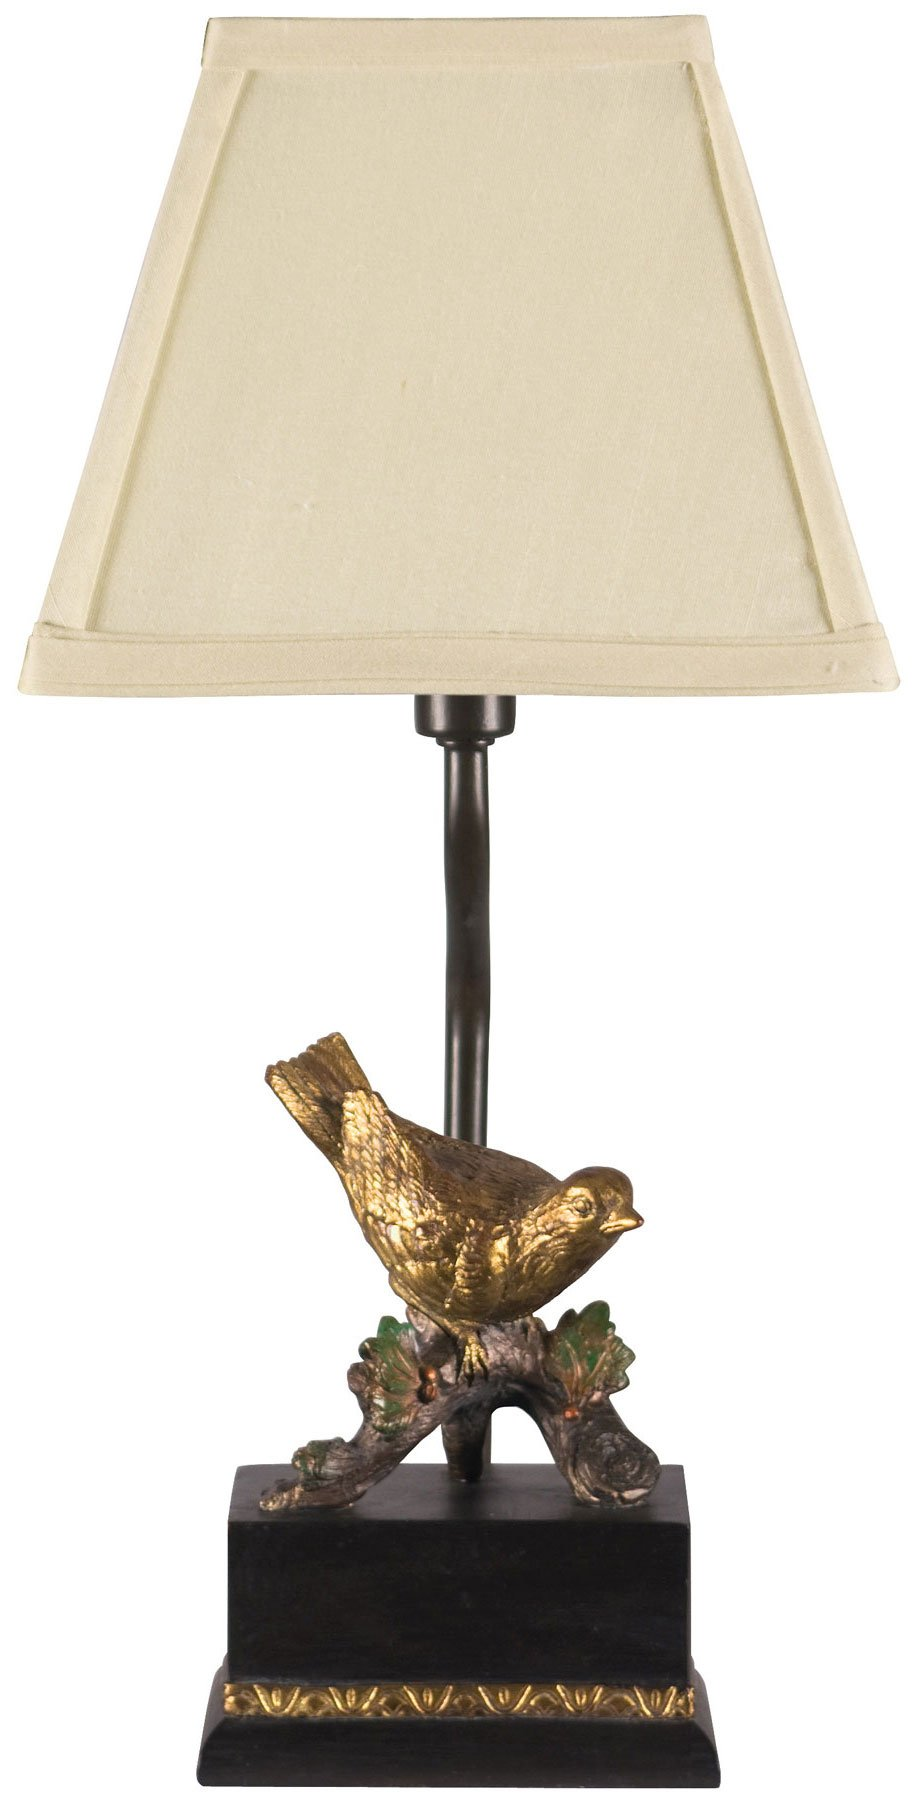 Dimond Lighting 93-938 Perching Robin 1-Light Candlestick Traditional Table Lamp, 7'' x 15'', Clear